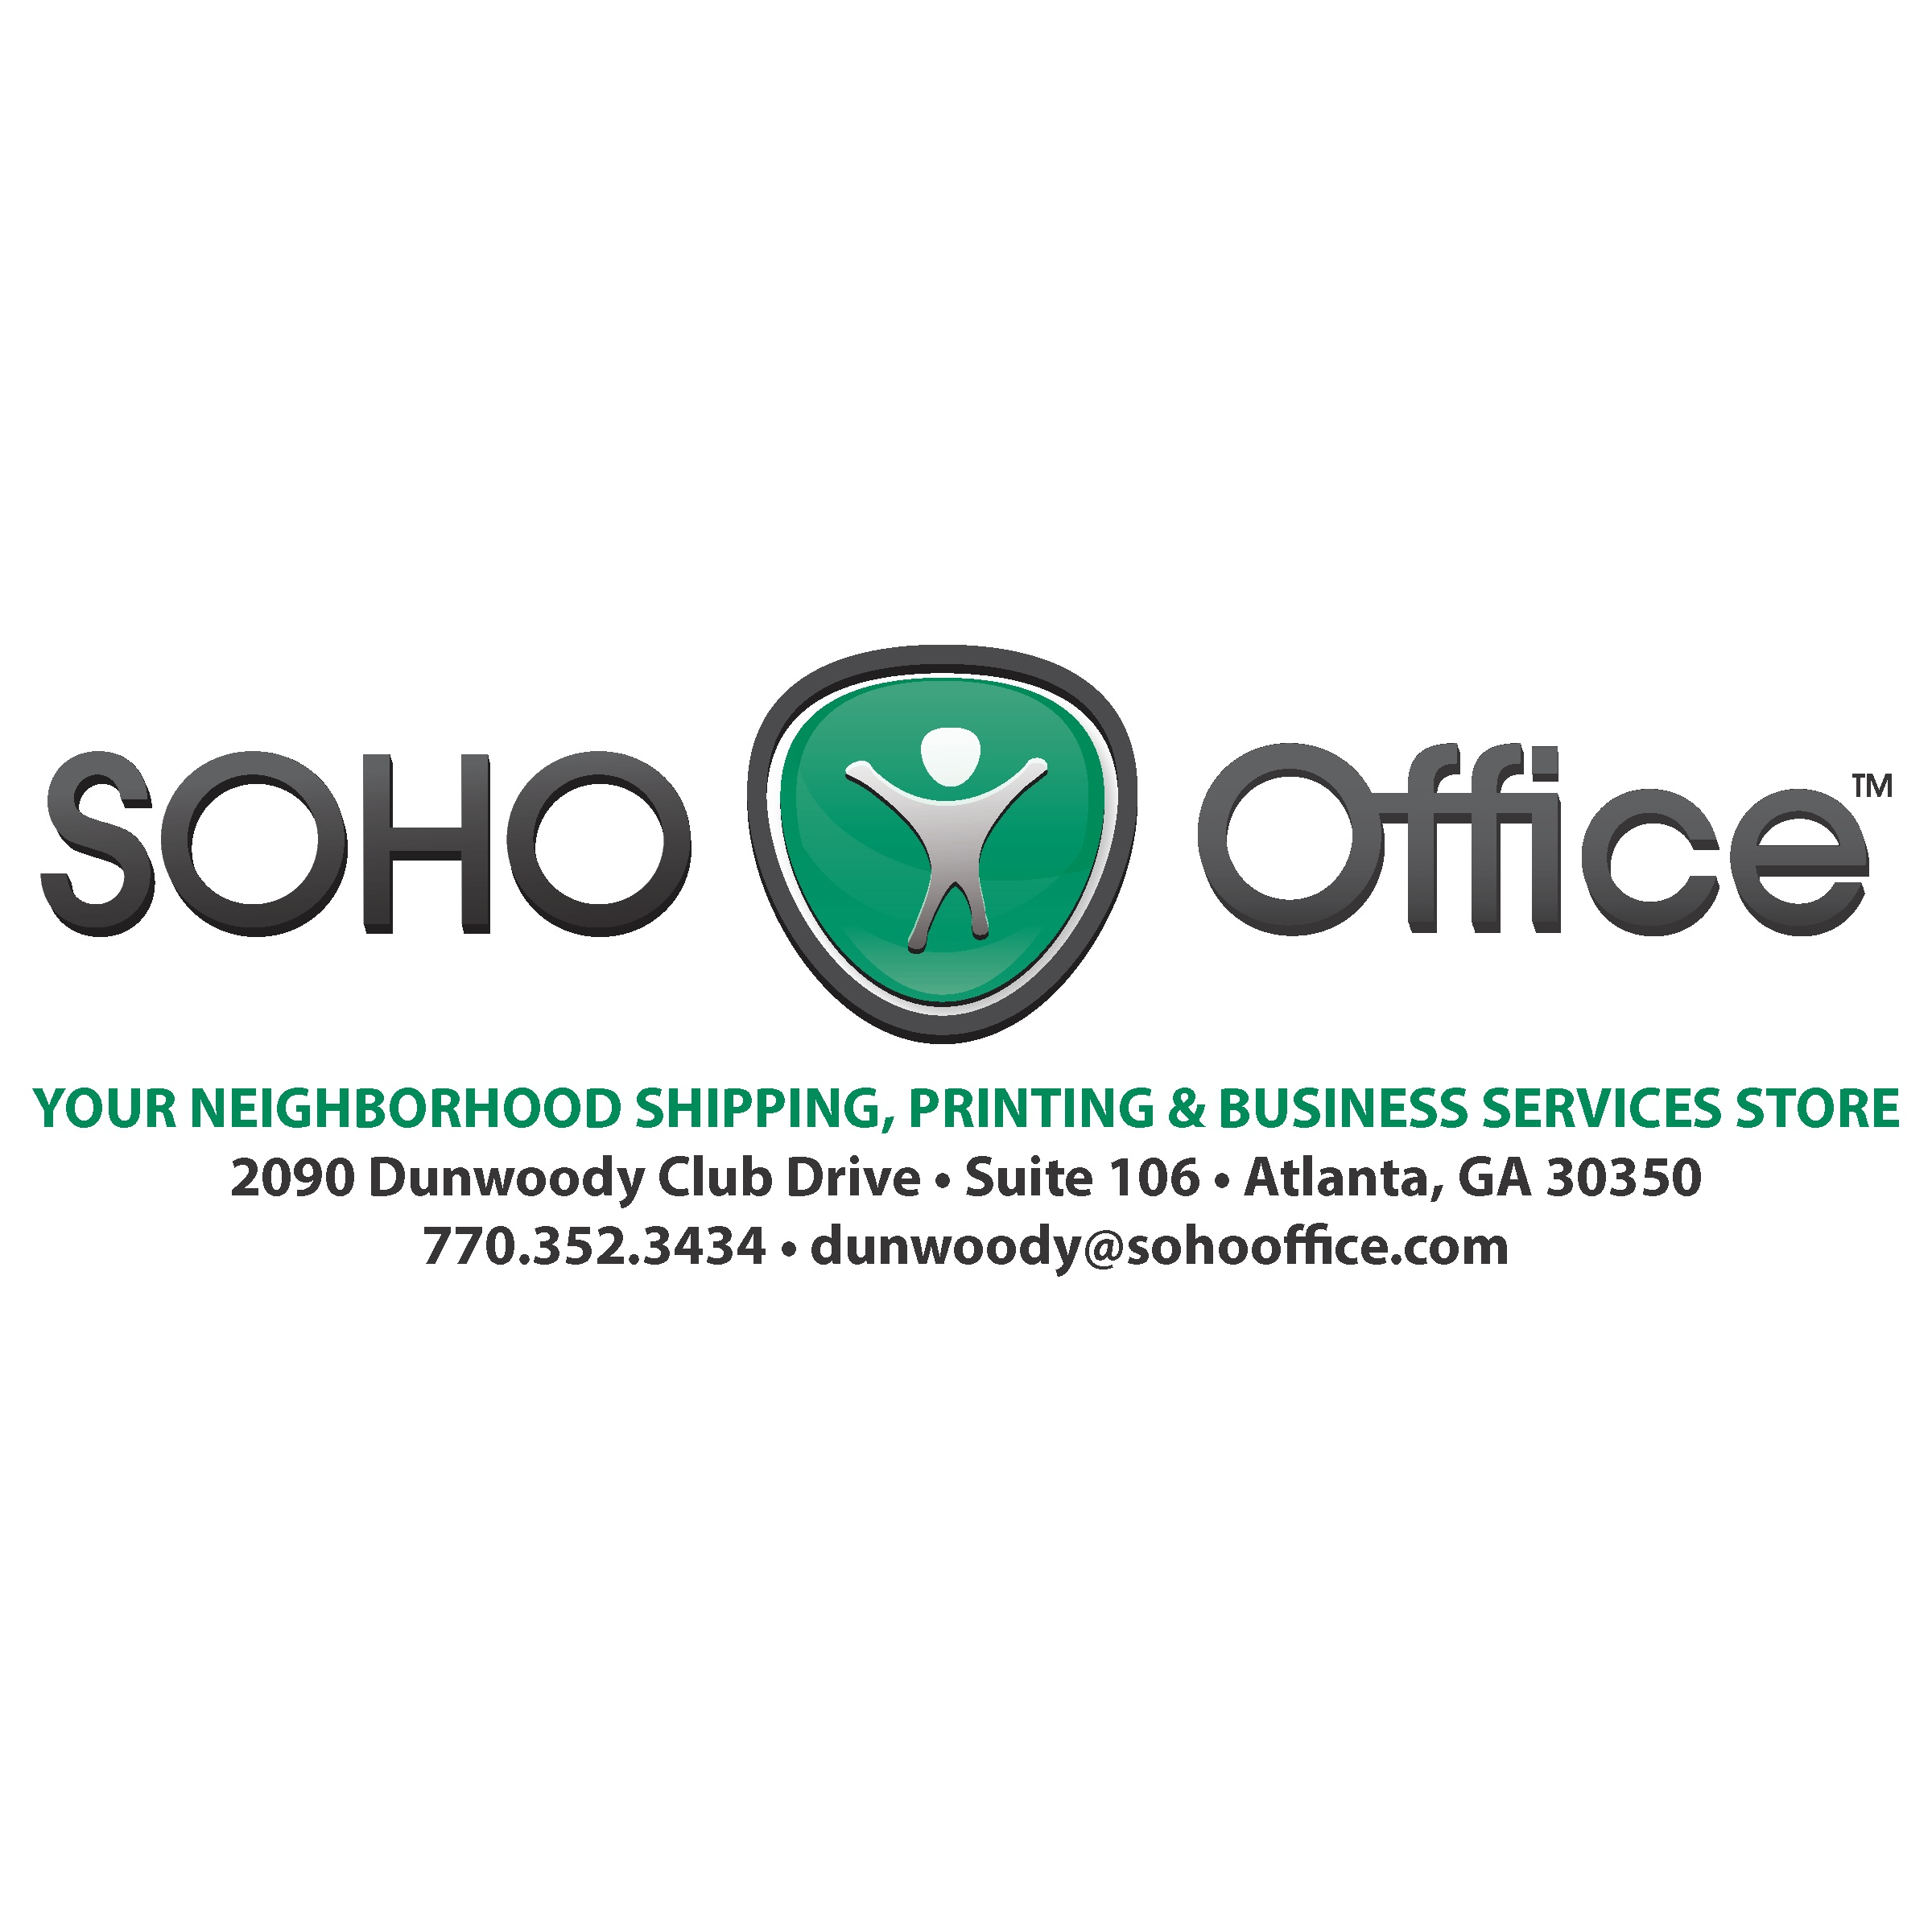 3x8 SOHO Office square.png